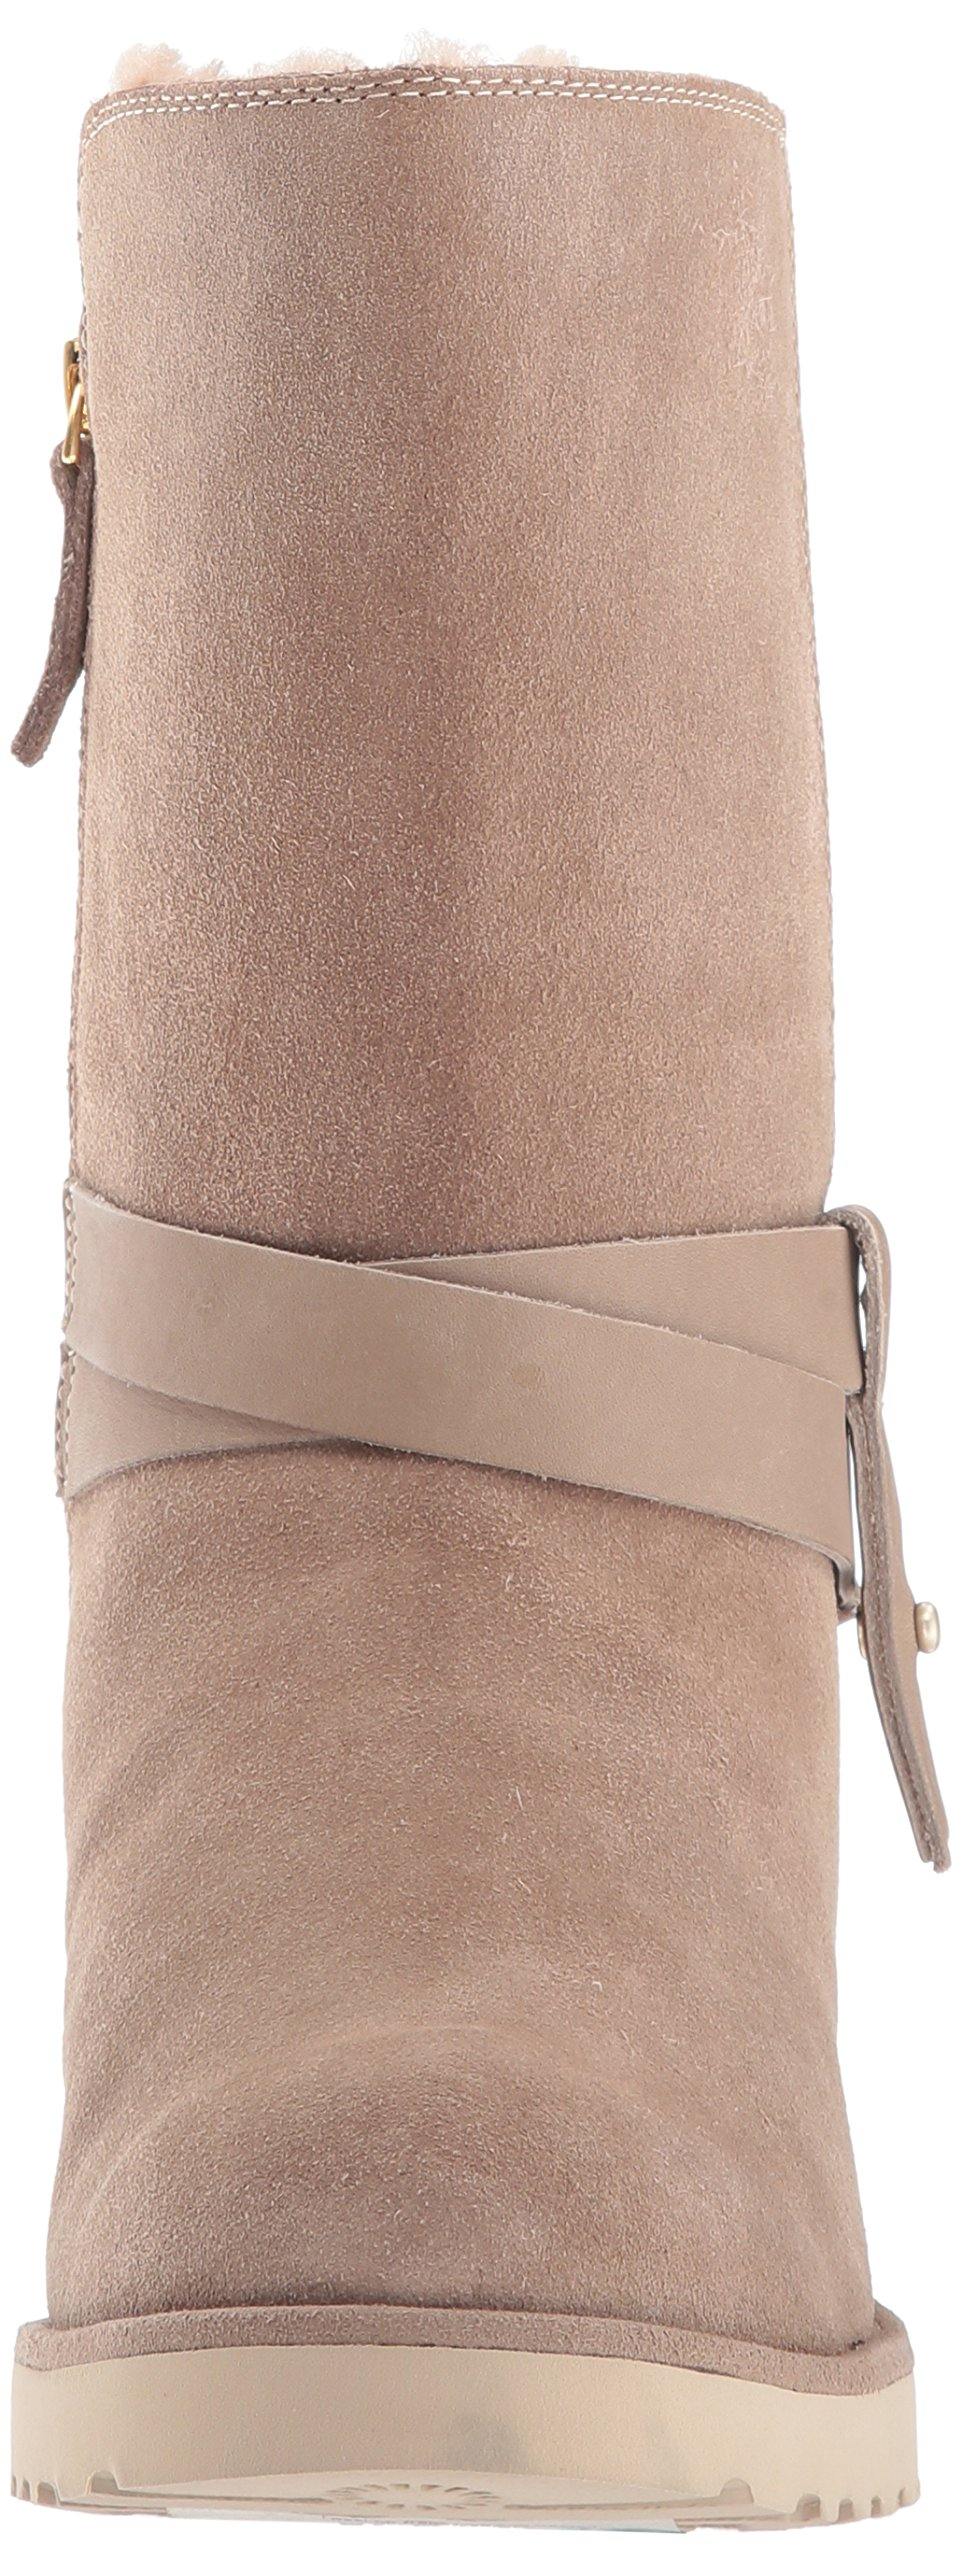 UGG Women's Aysel Winter Boot, Fawn, 7.5 M US by UGG (Image #4)